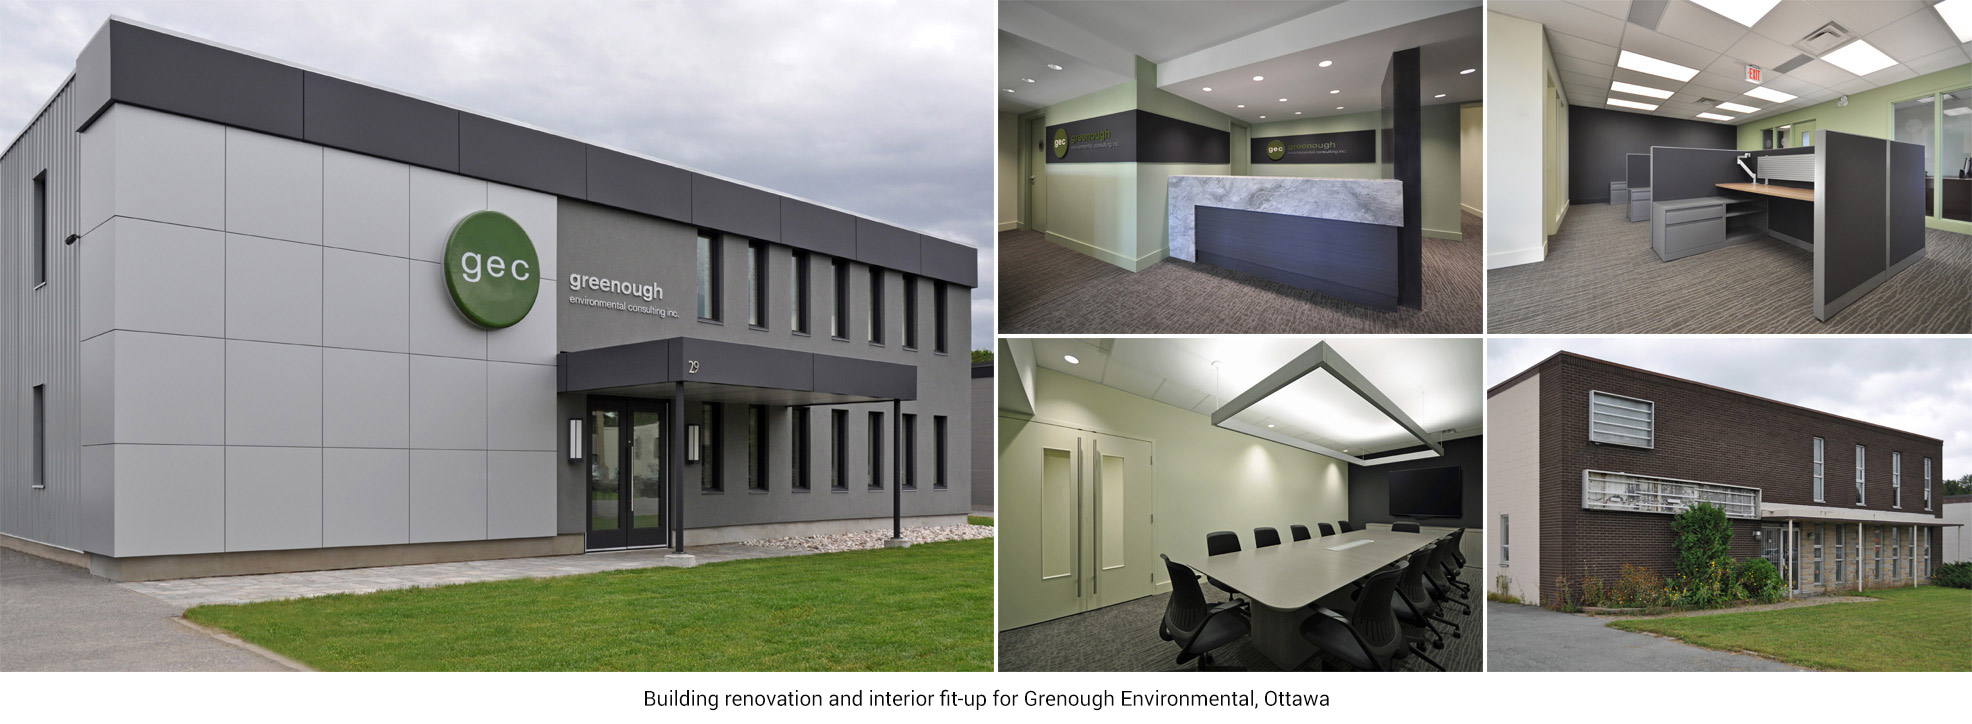 Building renovation and interior fit-up for Grenough Environmental, Ottawa